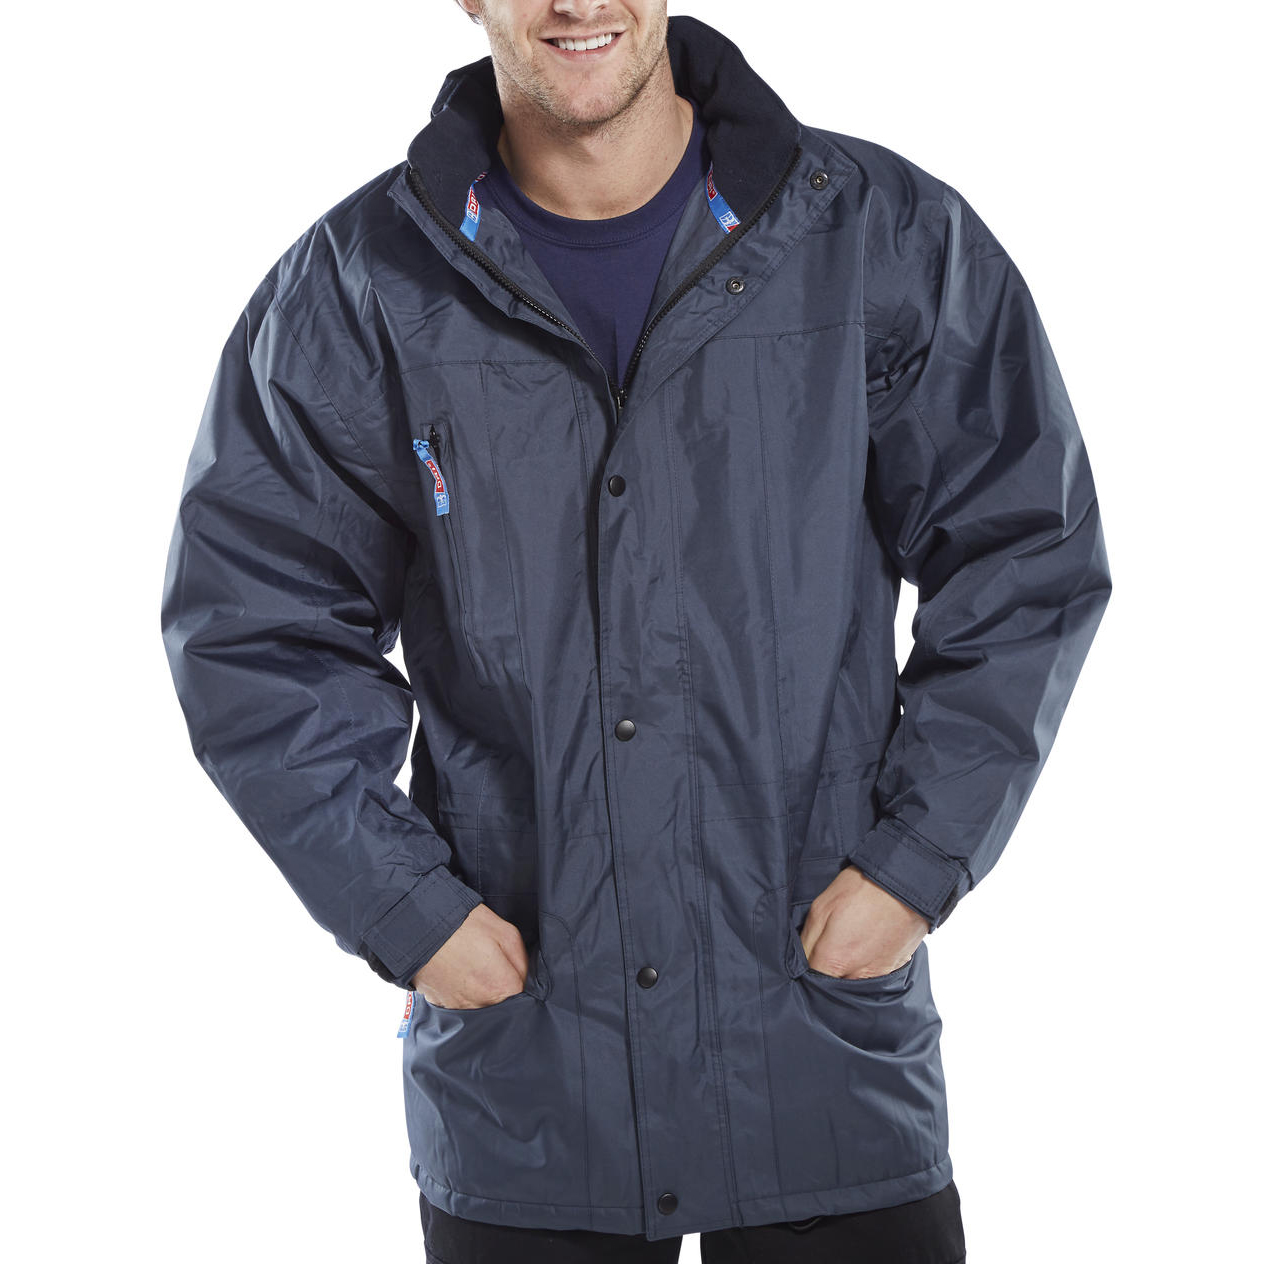 B-Dri Weatherproof Guardian Jacket Concealed Hood Medium Navy Blue Ref GU88PNM Up to 3 Day Leadtime